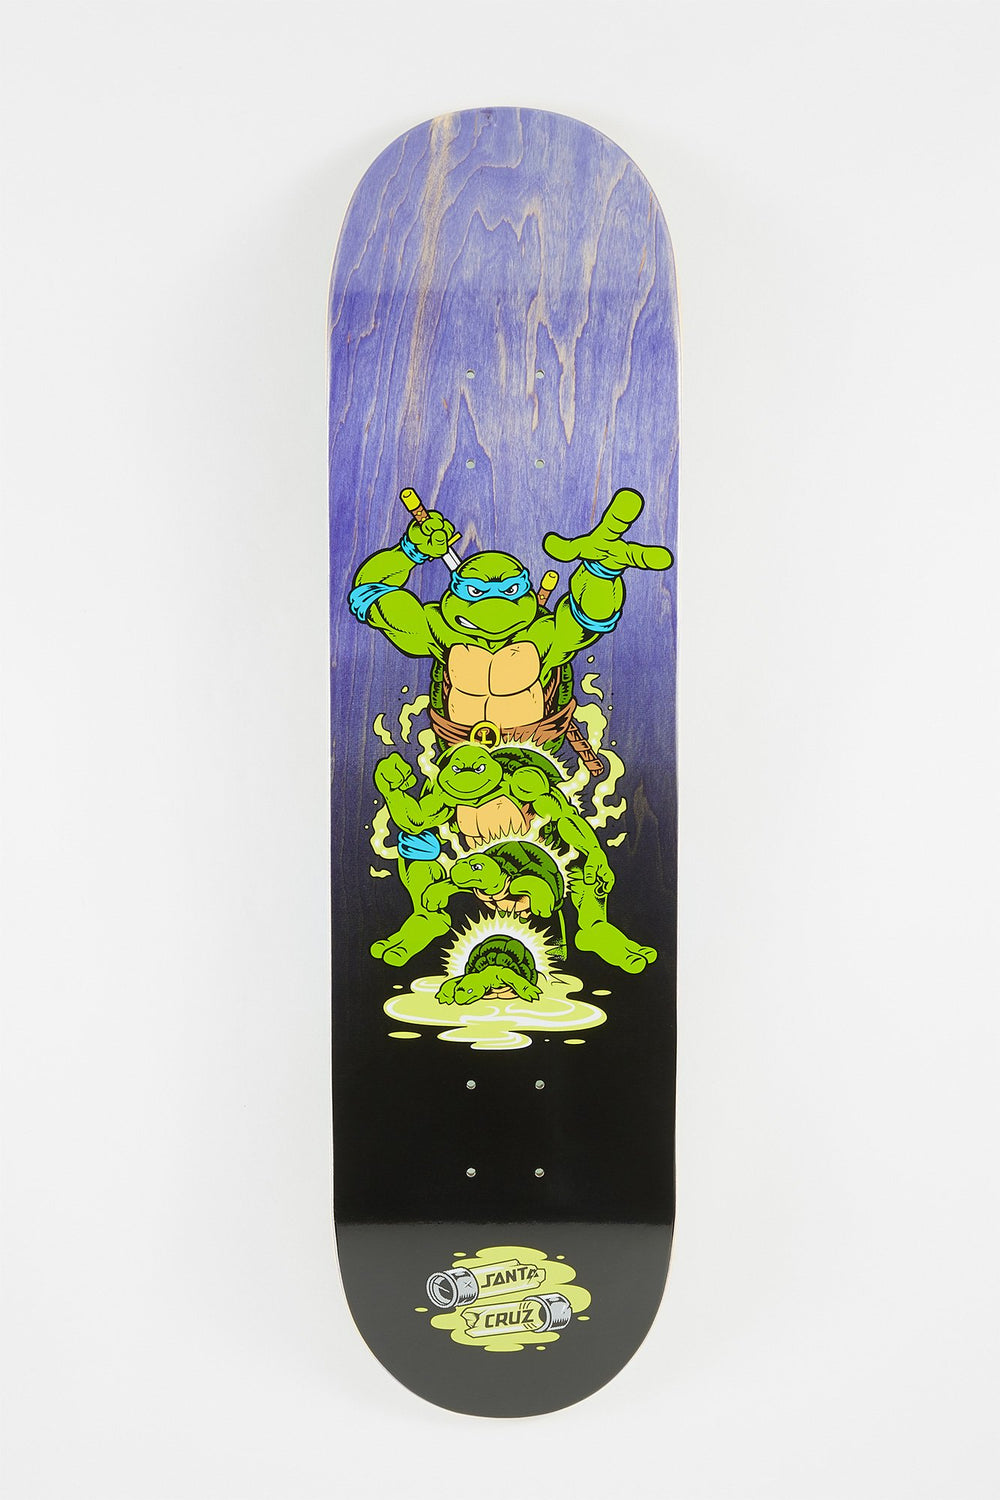 Ninja Turtles x Santa Cruz Leonardo Skateboard Deck Blue